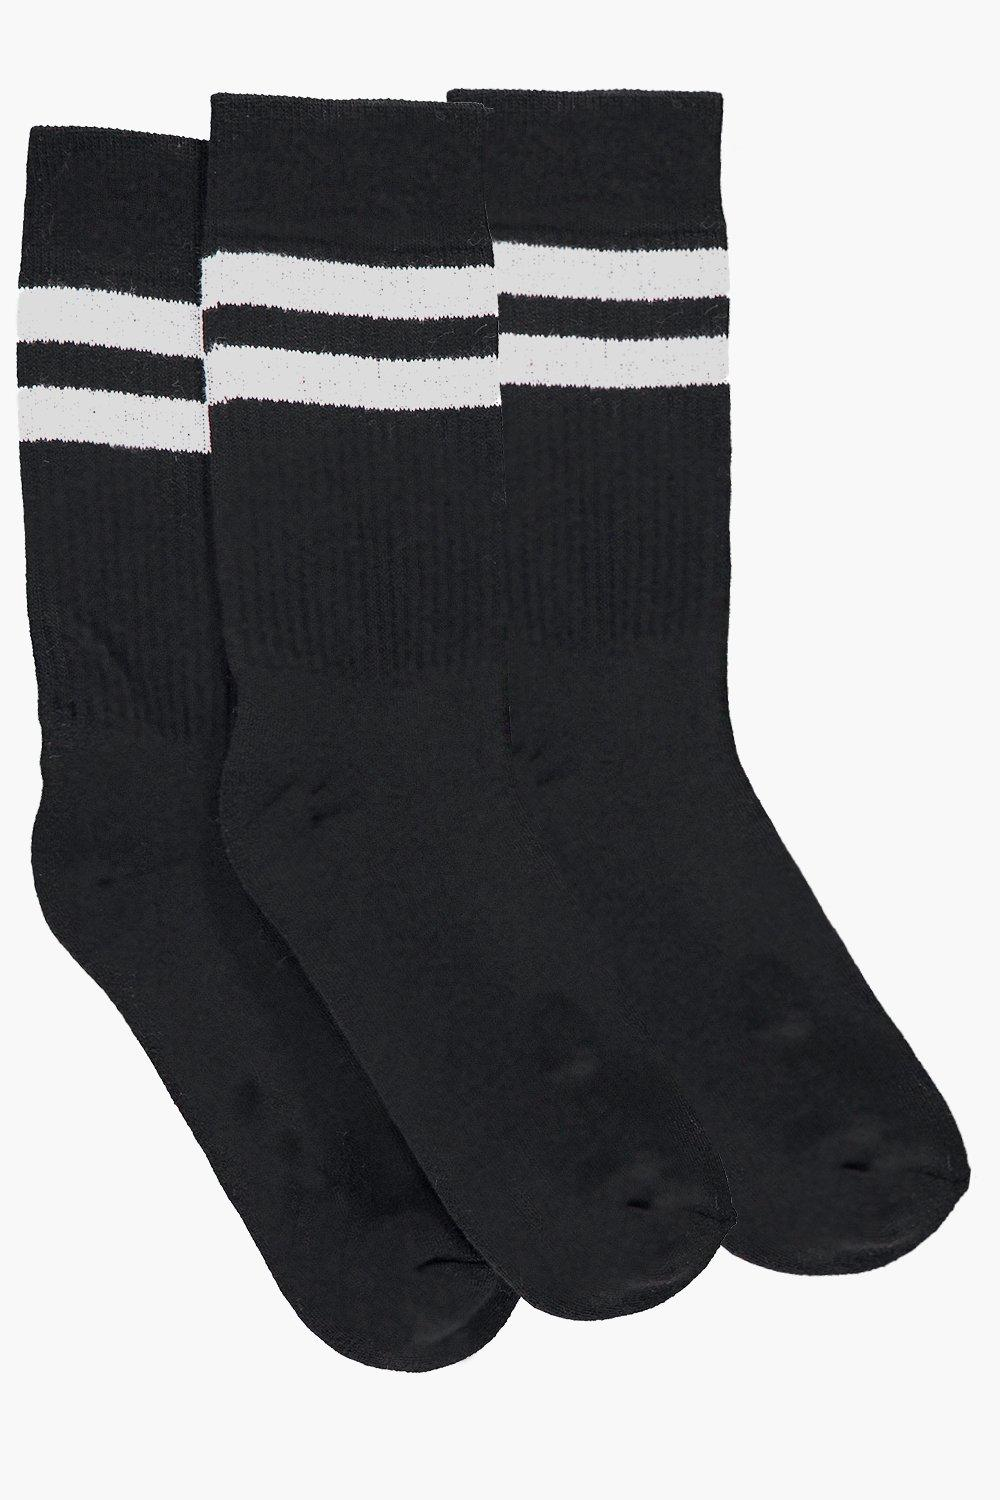 3 Pack Sports Tube Socks